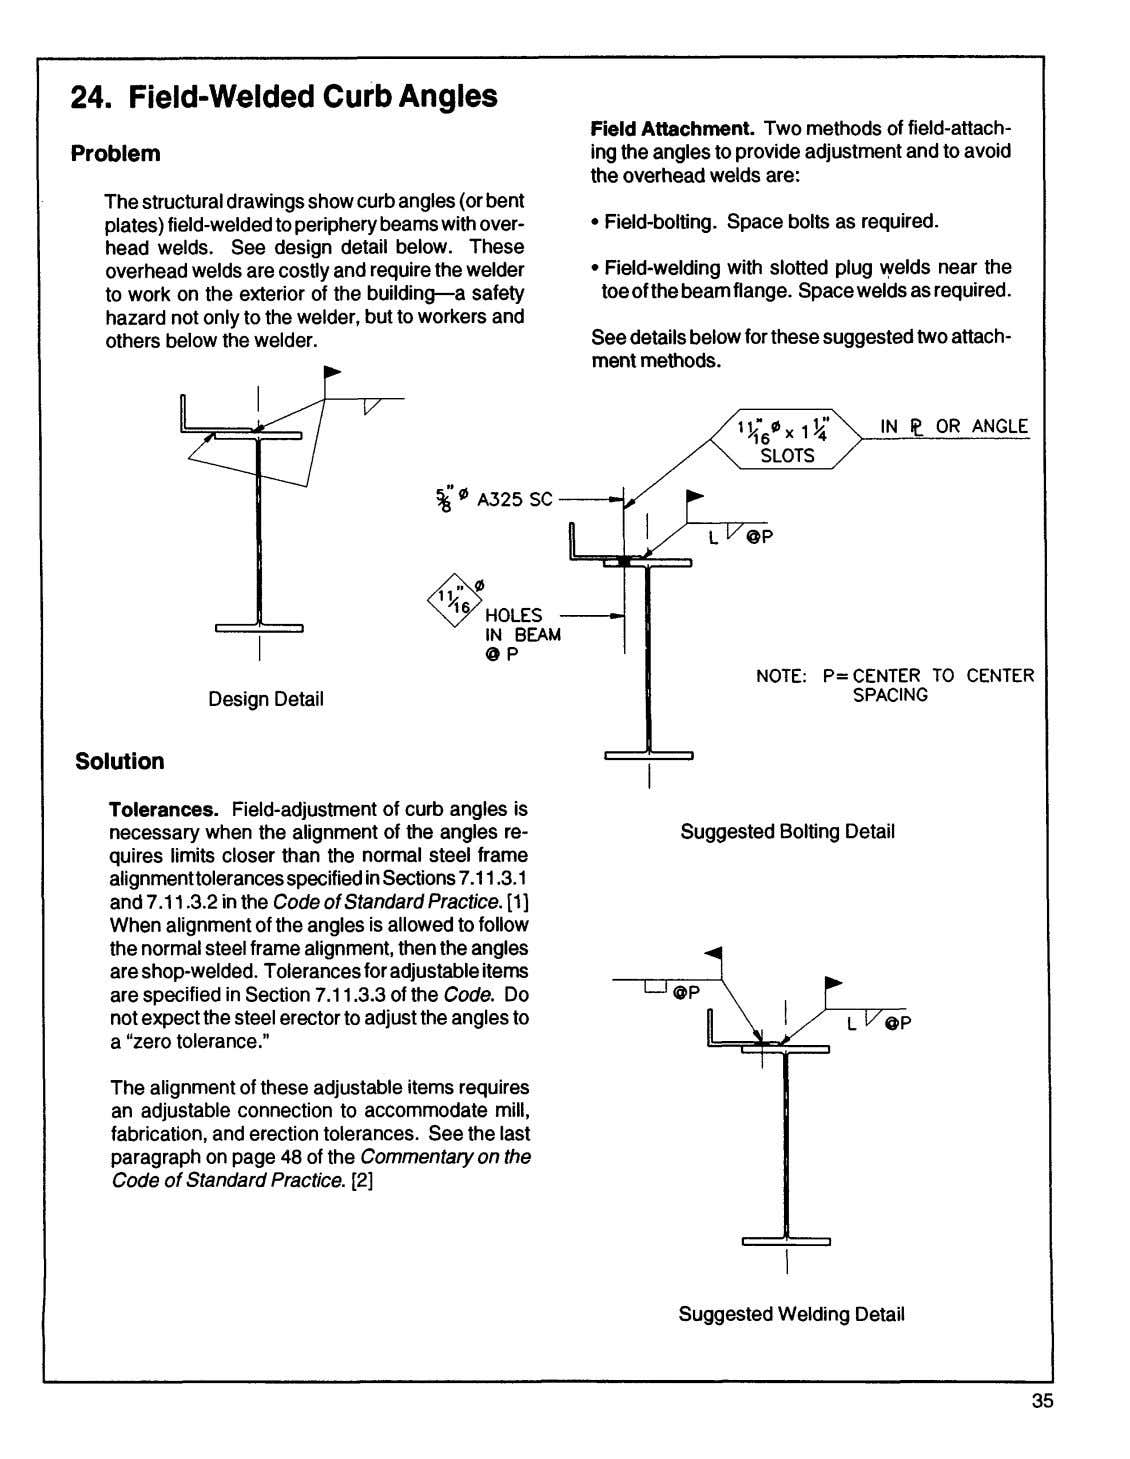 24. Field-Welded Curb Angles P r o b l e m Field Attachment. Two methods